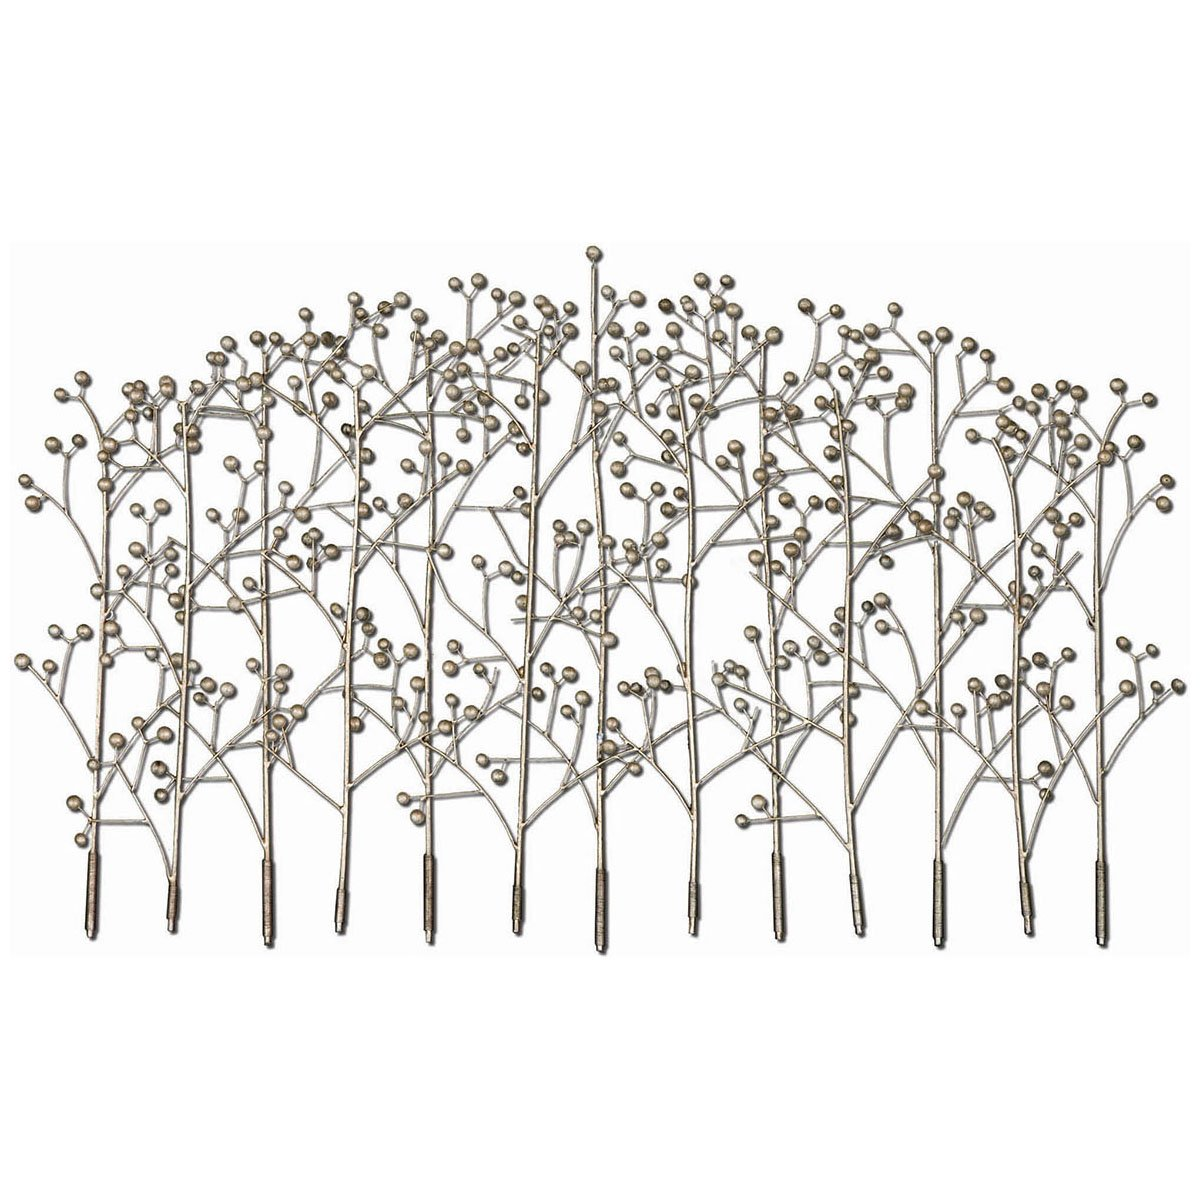 Amazon.com: Uttermost 05018 Iron Trees Metal Wall Art: Wall Sculptures:  Posters U0026 Prints